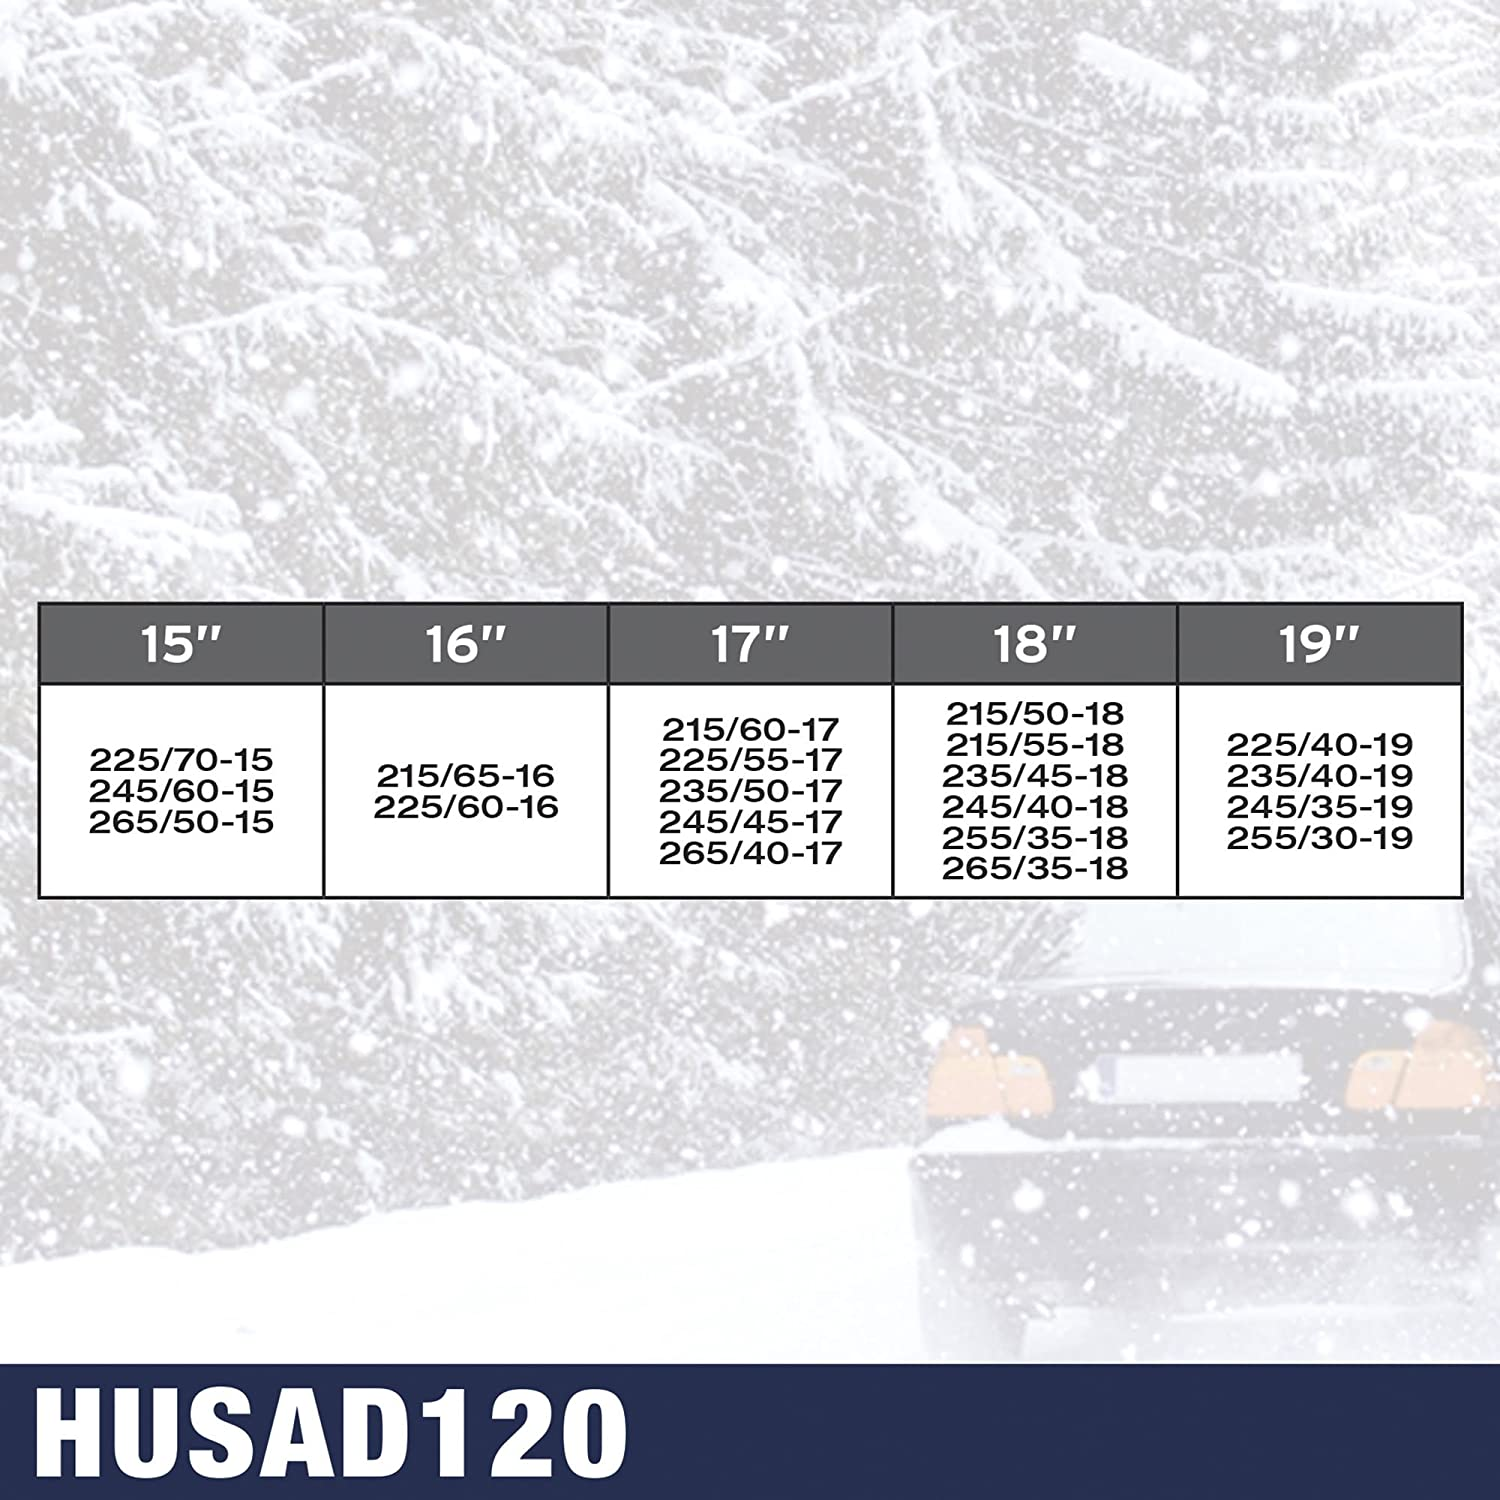 O Cadenas De Nieve Husky Advance 9 mm Normal Kn110 SUMEX Husa110